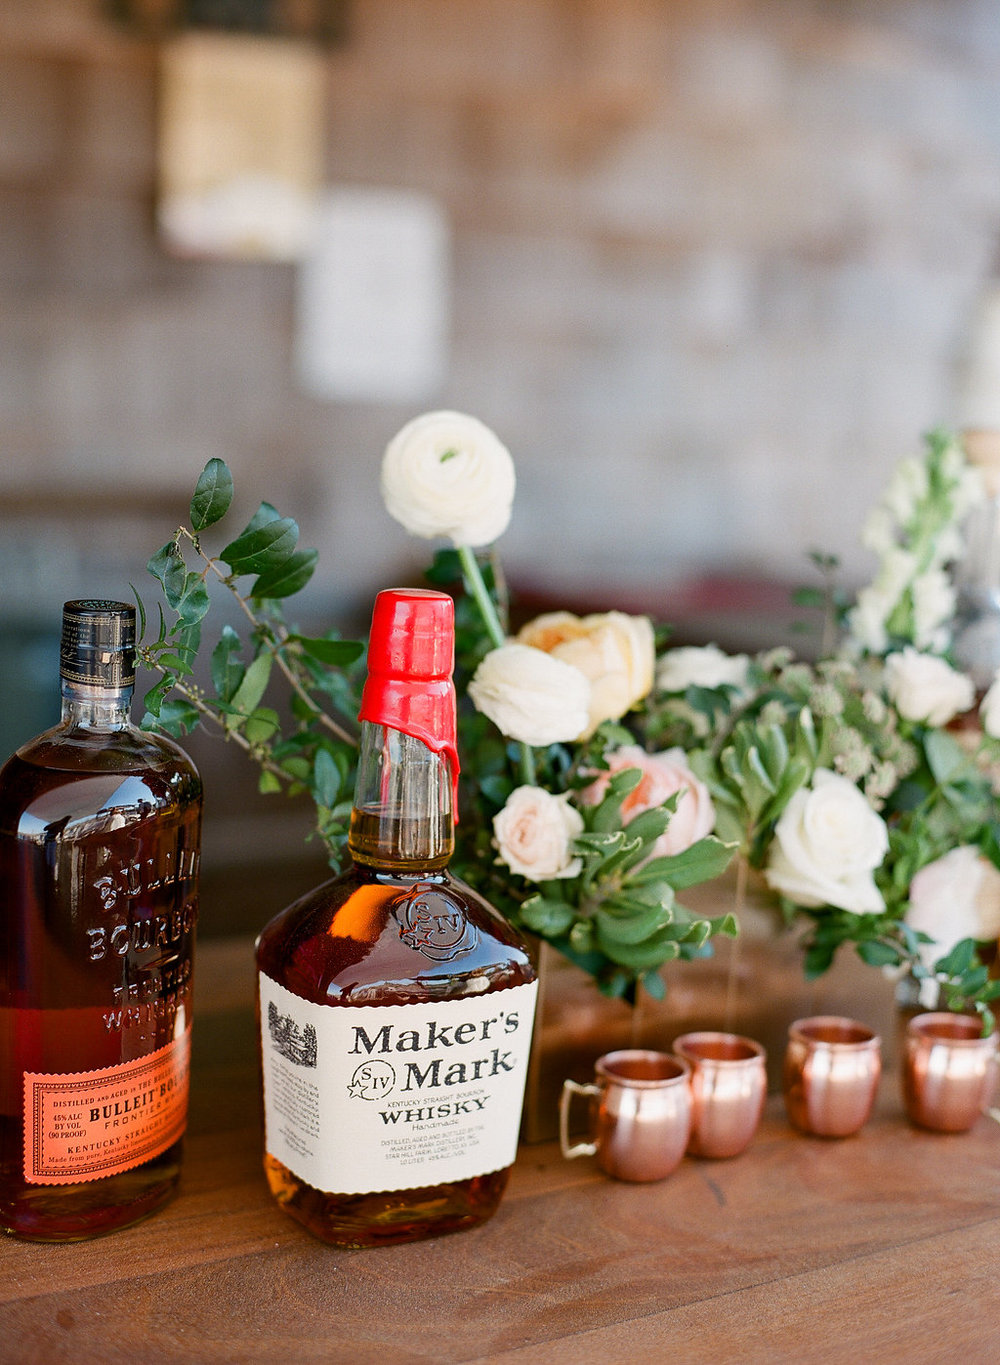 bourbon-whiskey-shot-bar-the-wyld-dock-bar-savannah-weddings-savannah-wedding-planner-savannah-event-designer-savannah-wedding-florist.jpg